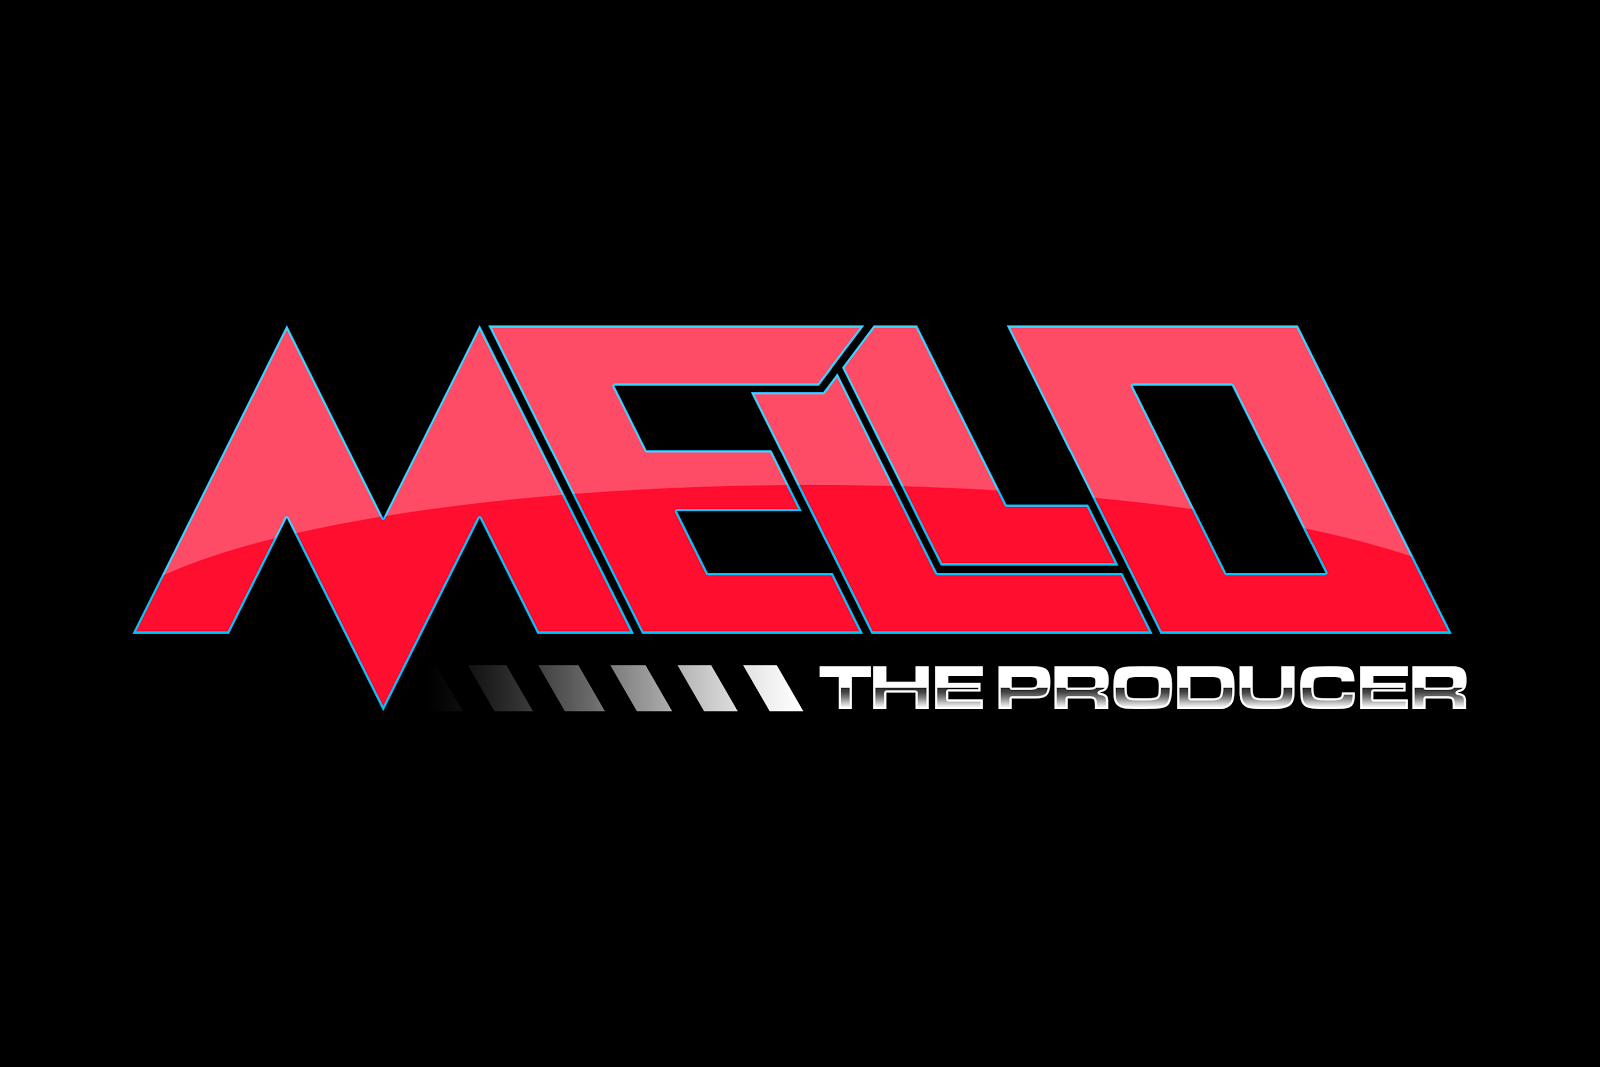 Mello The Producer